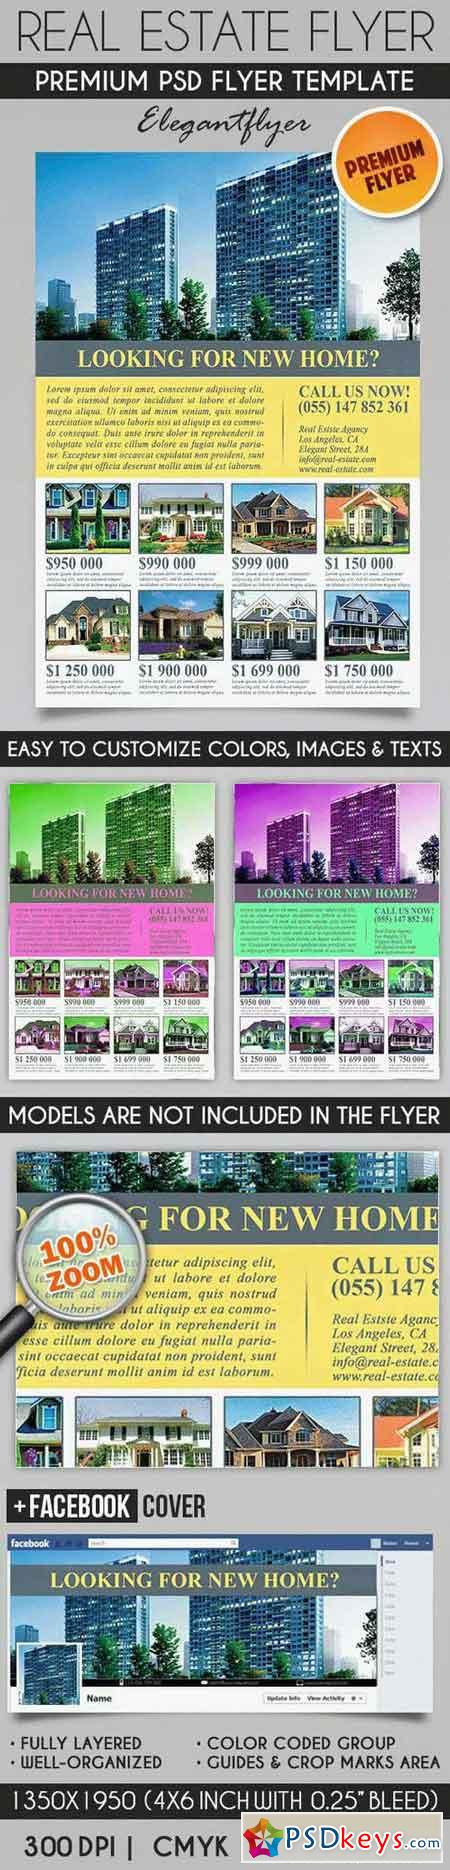 Real estate flyer psd template facebook cover free for Real estate brochure templates psd free download